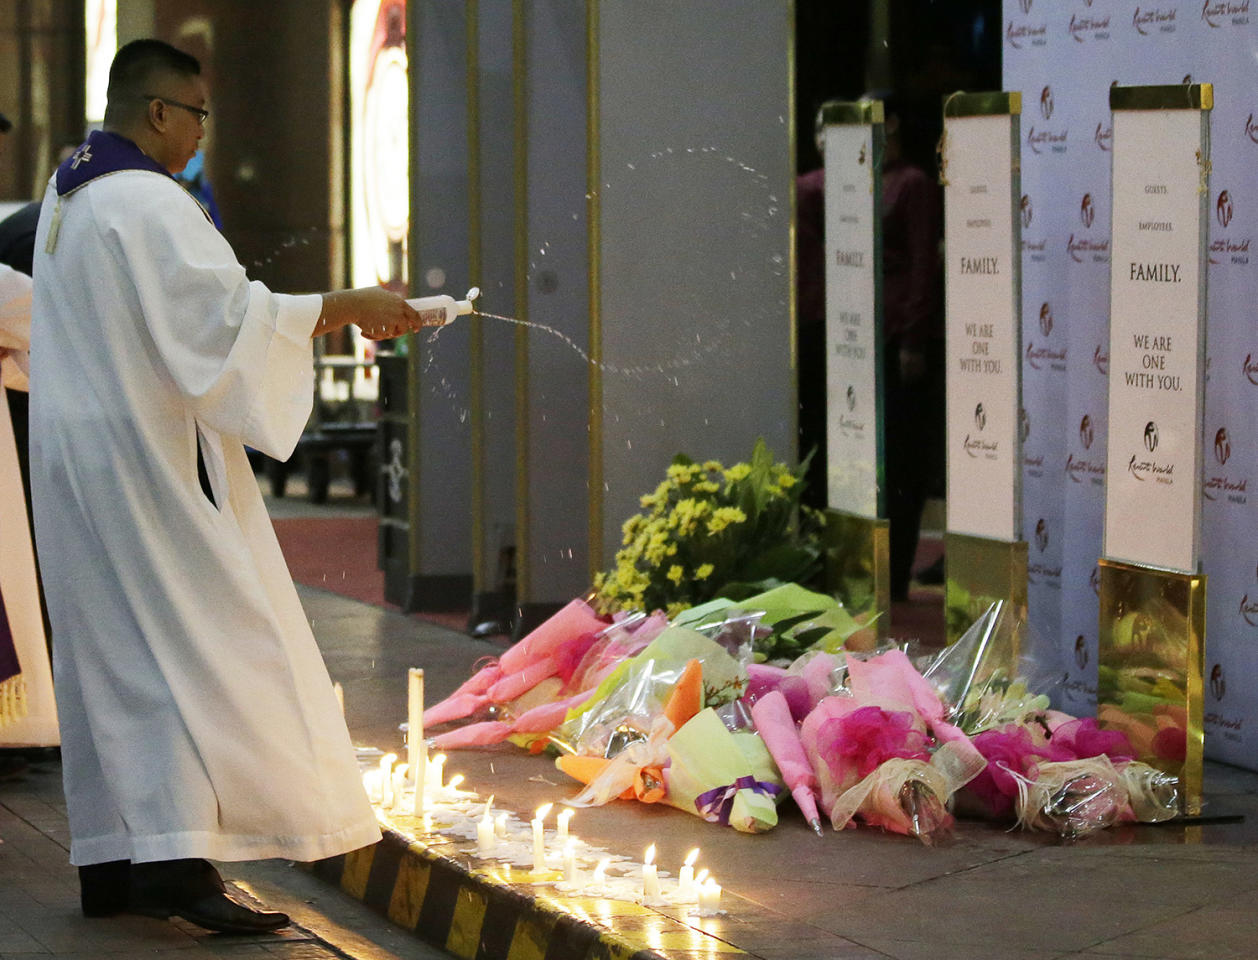 <p>A Catholic priest sprinkles holy water on a memorial during a mass for victims of an attack at the Resorts World Manila complex, Friday, June 2, 2017, in Manila, Philippines. (Photo: Aaron Favila/AP) </p>